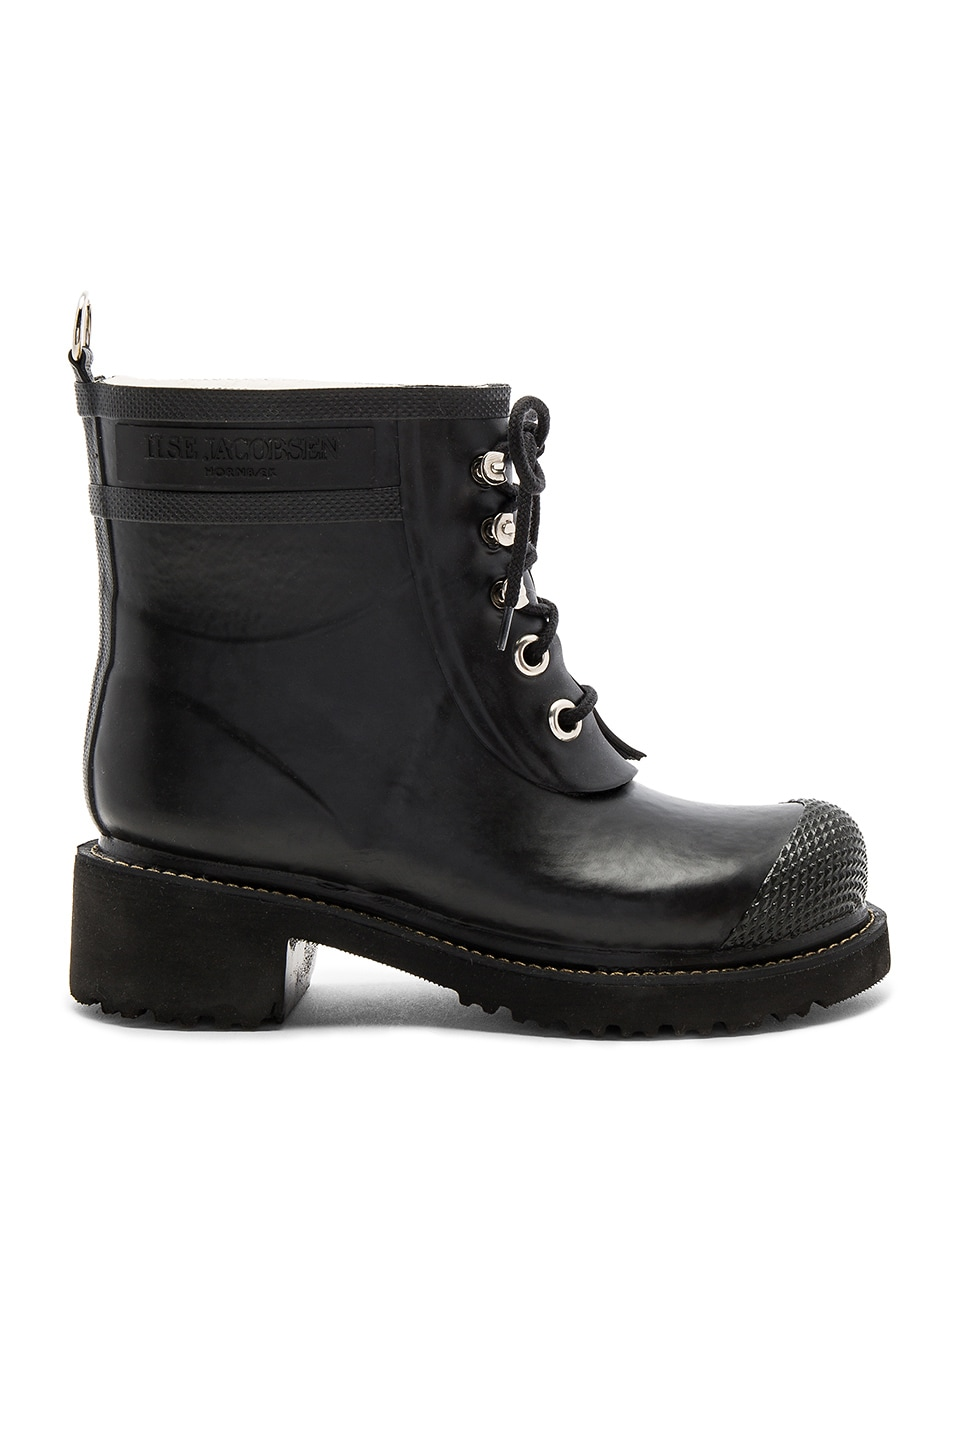 New Classic Boot by ILSE JACOBSEN